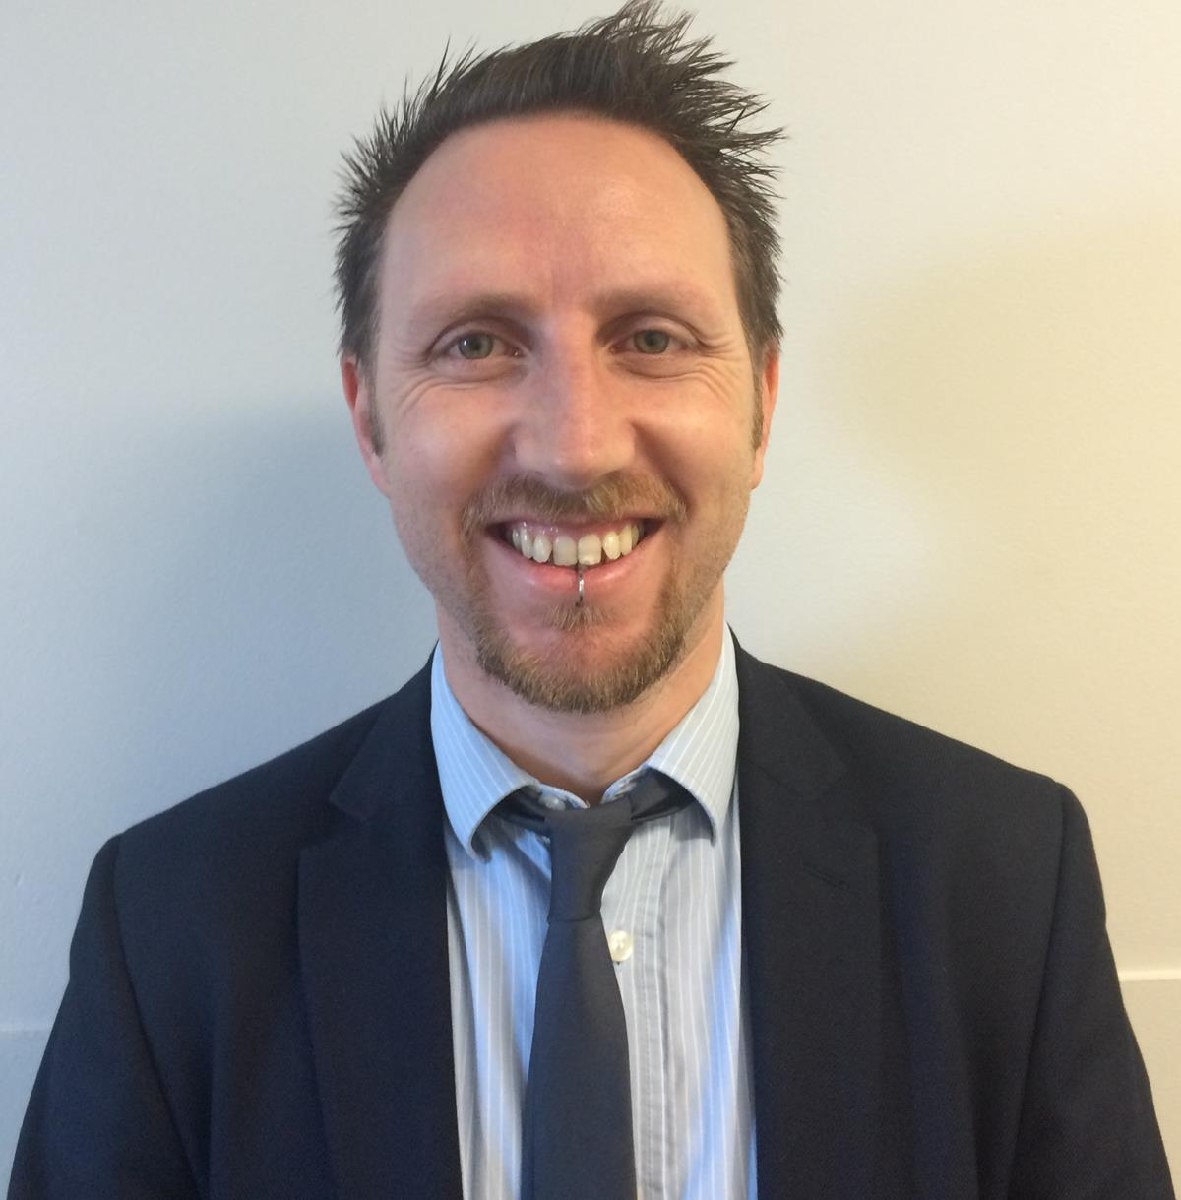 Alex Harvey - ICT Manager and Teacher at The Orchard School